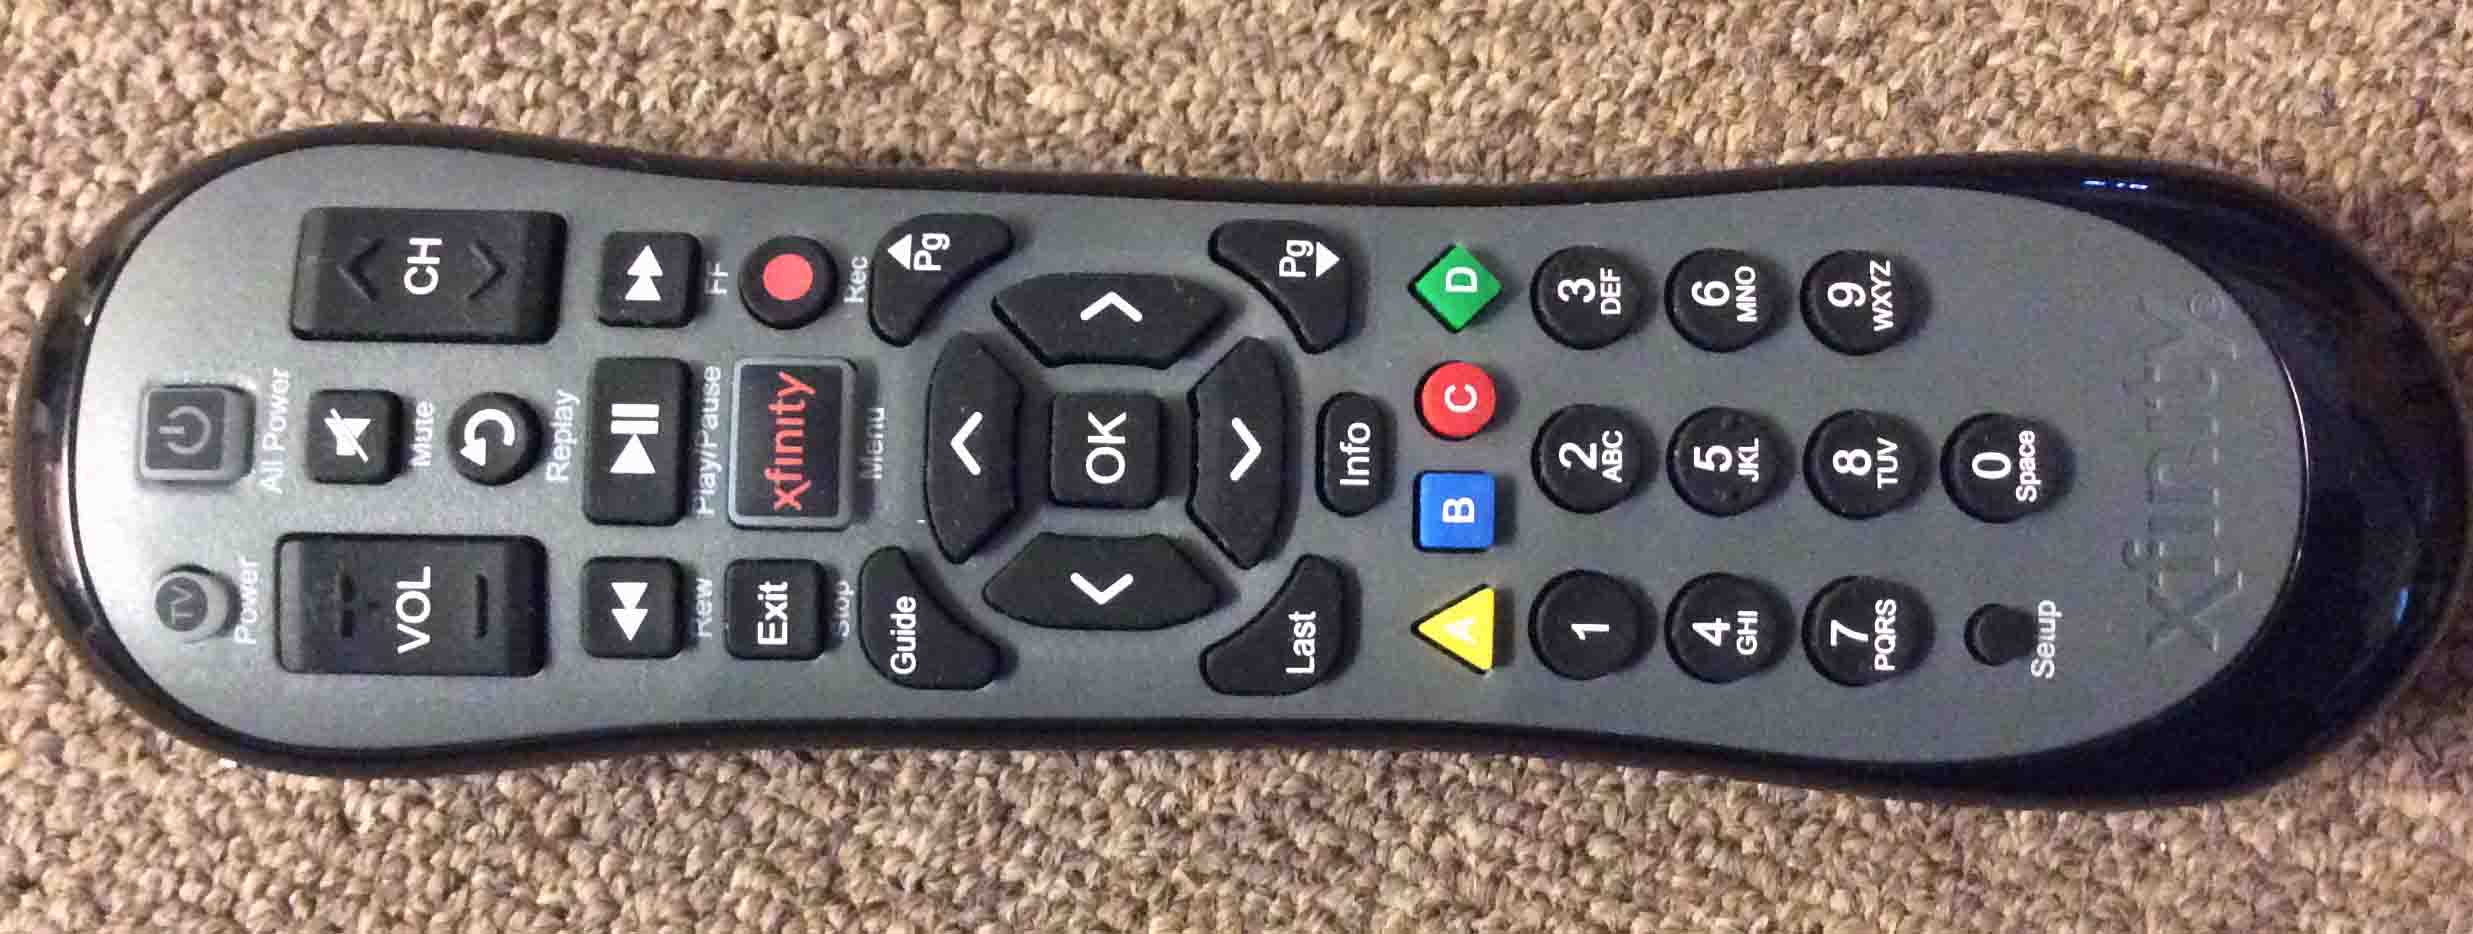 Reset Xfinity Remote XR2 to Fix Remote Not Working | Tom's